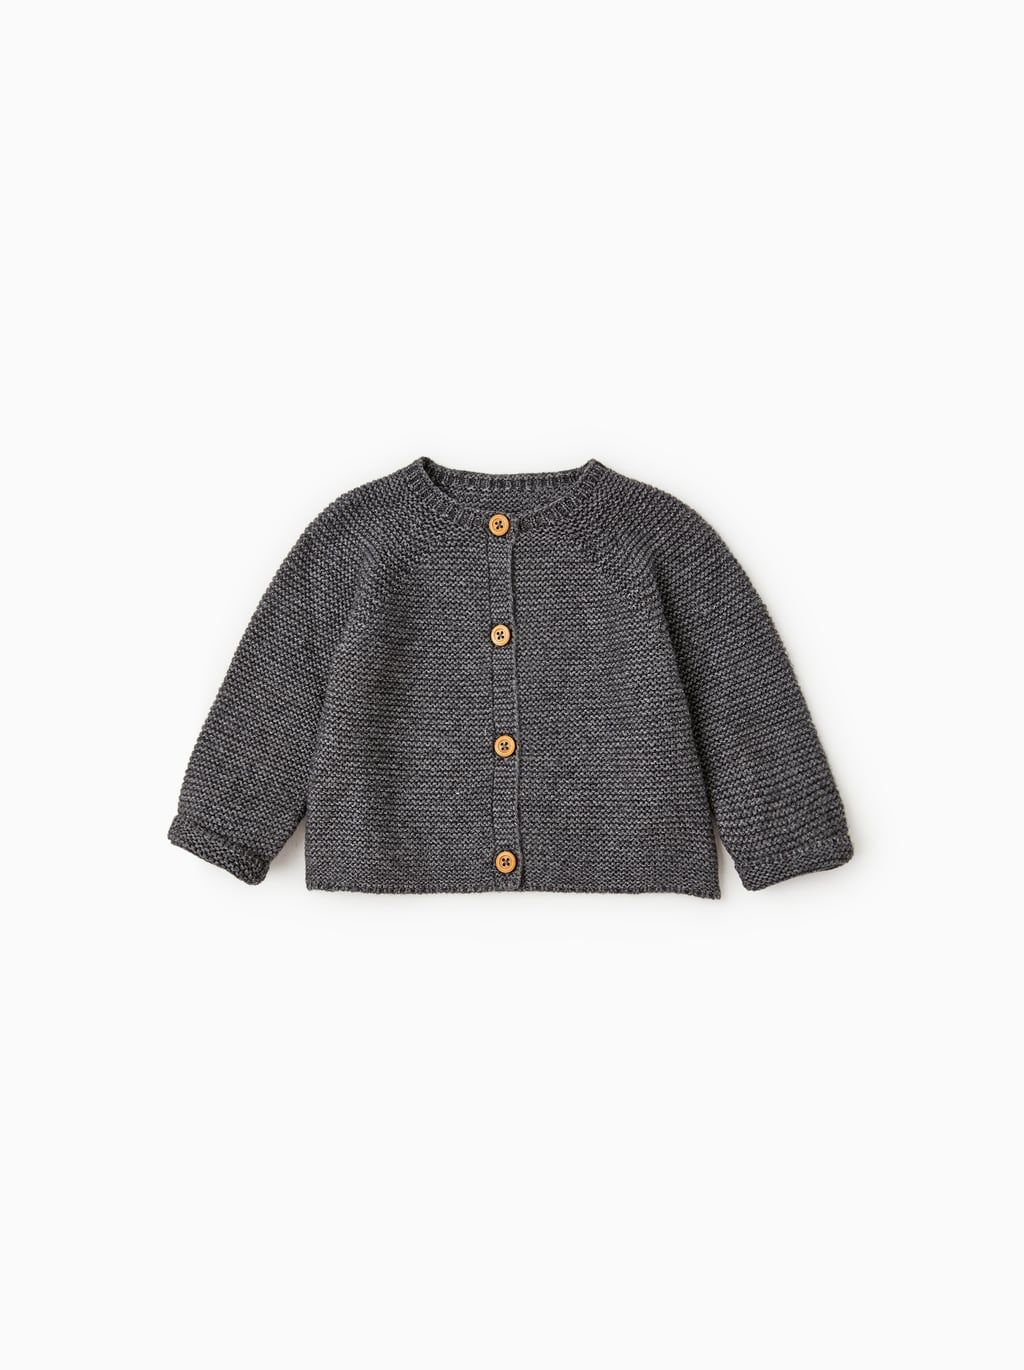 72548d932 Image 1 of LINKS JACKET from Zara